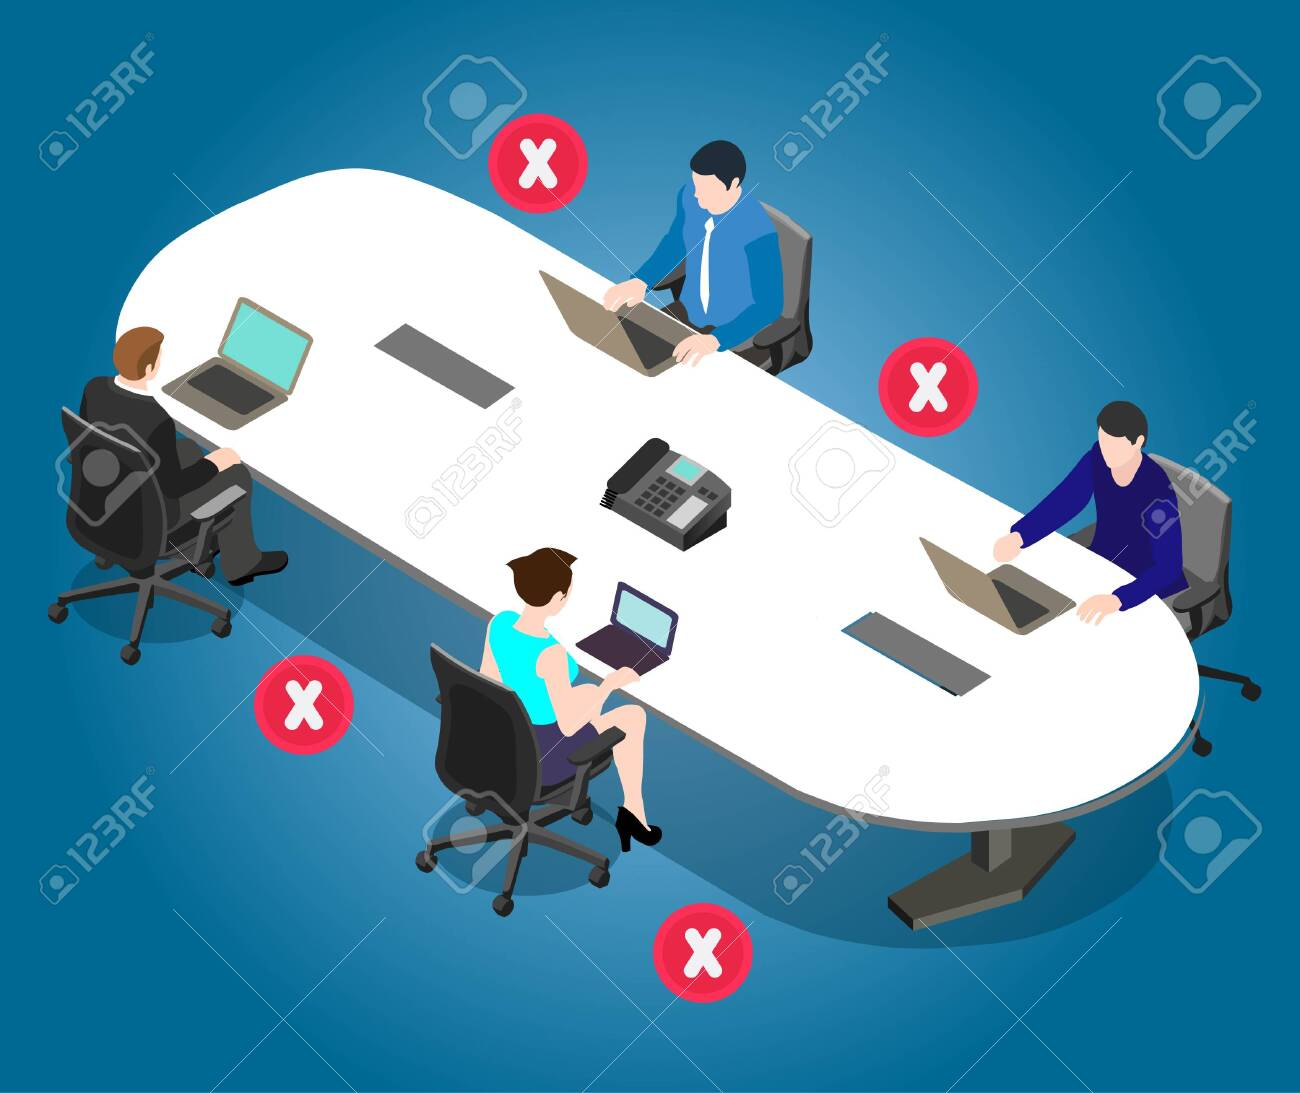 Social distancing poster for meeting room in office. Office employees are maintain social distance board room. Awareness image for precautions of covid-19 coronavirus. - 145993497